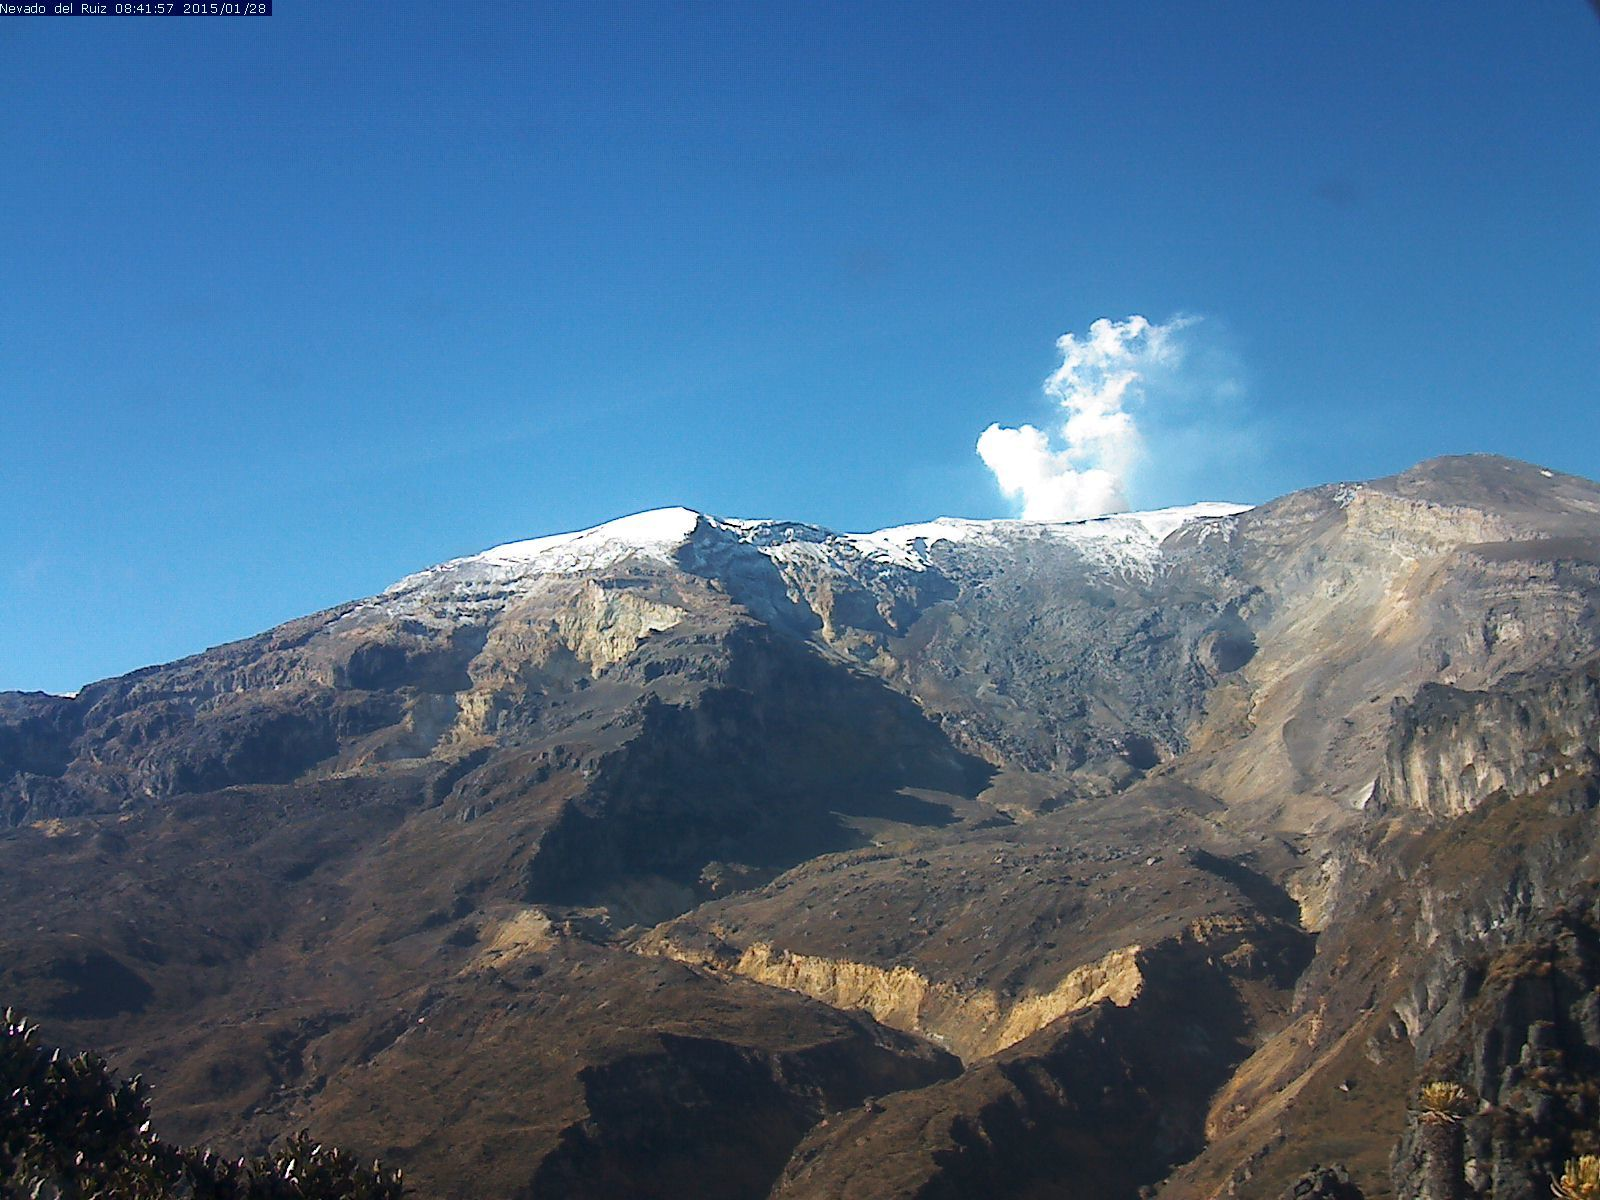 Nevado del Ruiz - 28.01.2015 / 8:40 - photo SGC Manizales